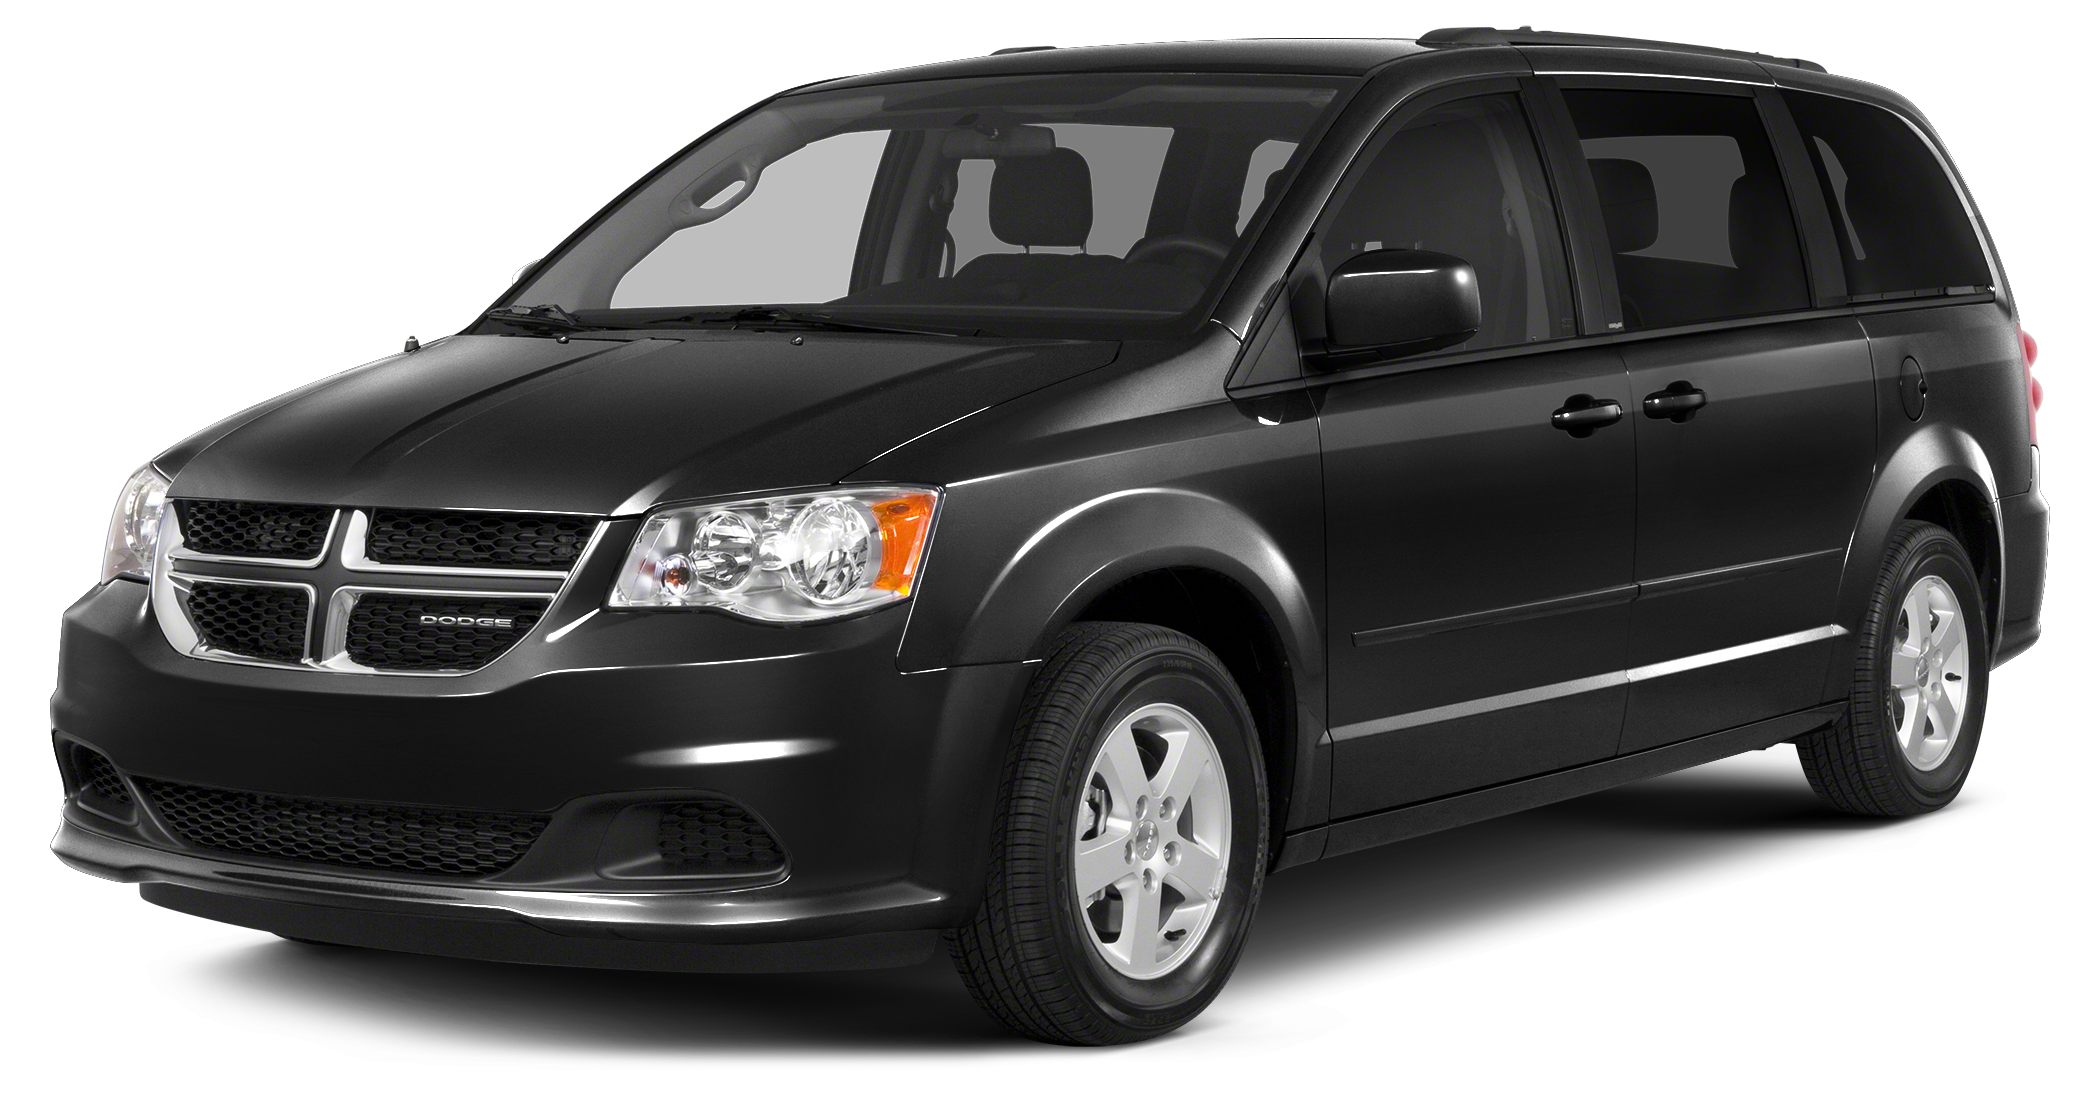 2012 Dodge Grand Caravan Crew WE SELL OUR VEHICLES AT WHOLESALE PRICES AND STAND BEHIND OUR CARS